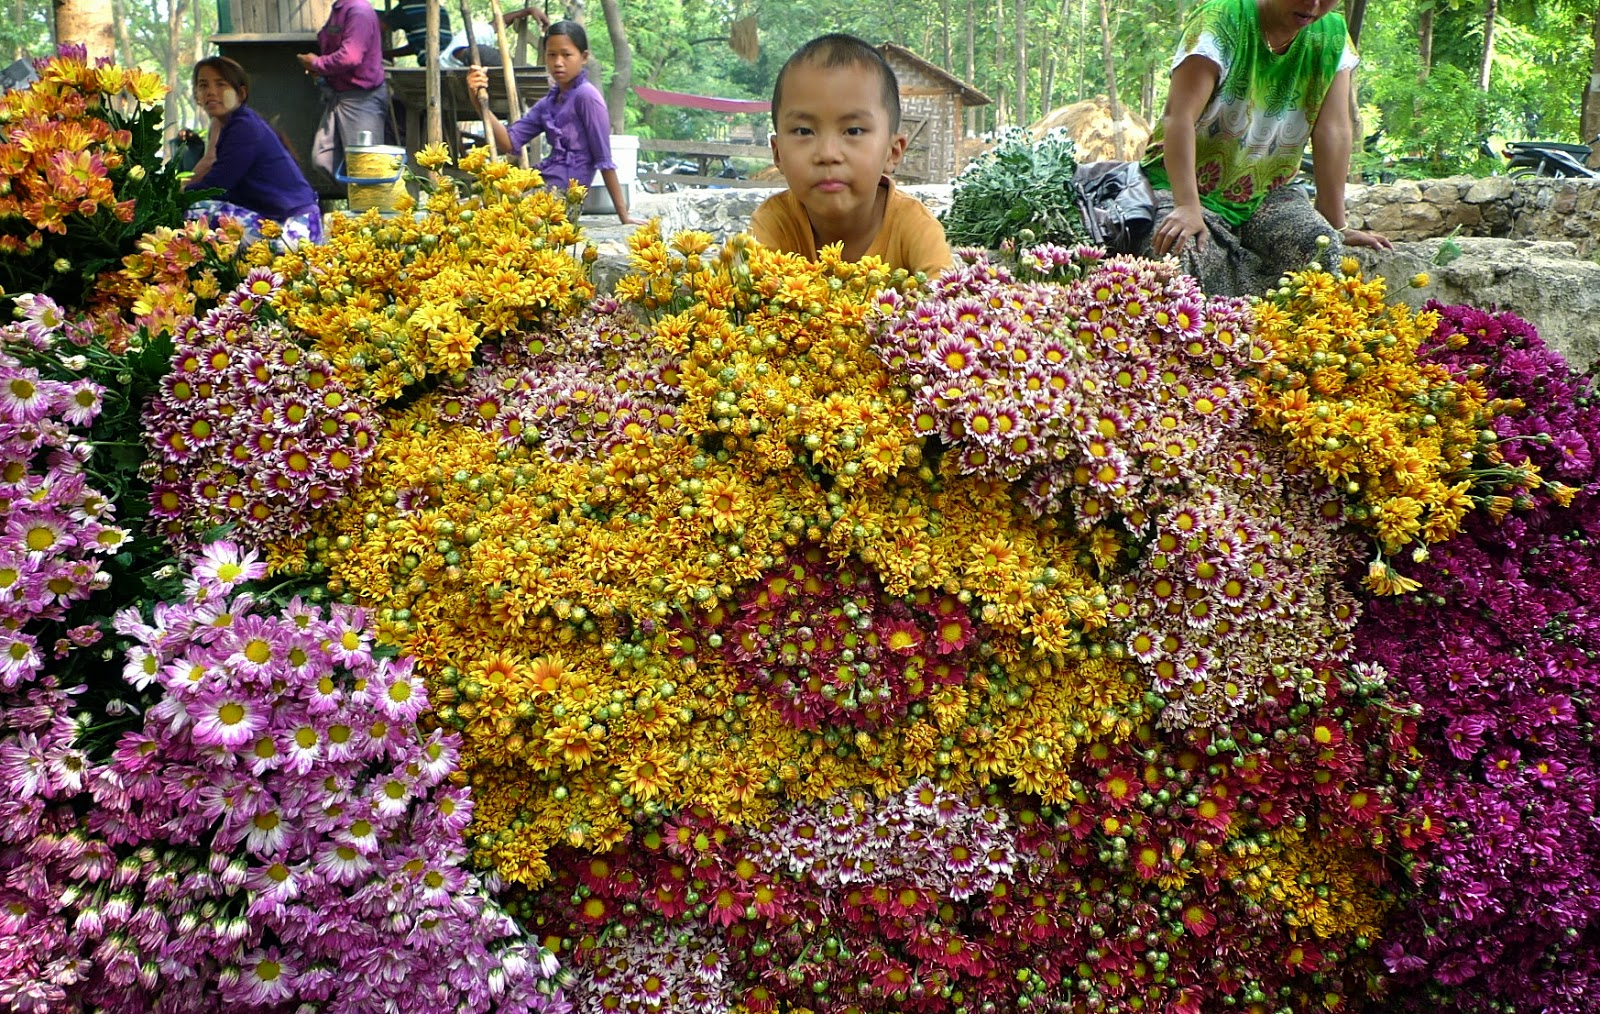 TRAVELS (and more) WITH CECILIA BRAINARD: Garden: The Flower Market ...